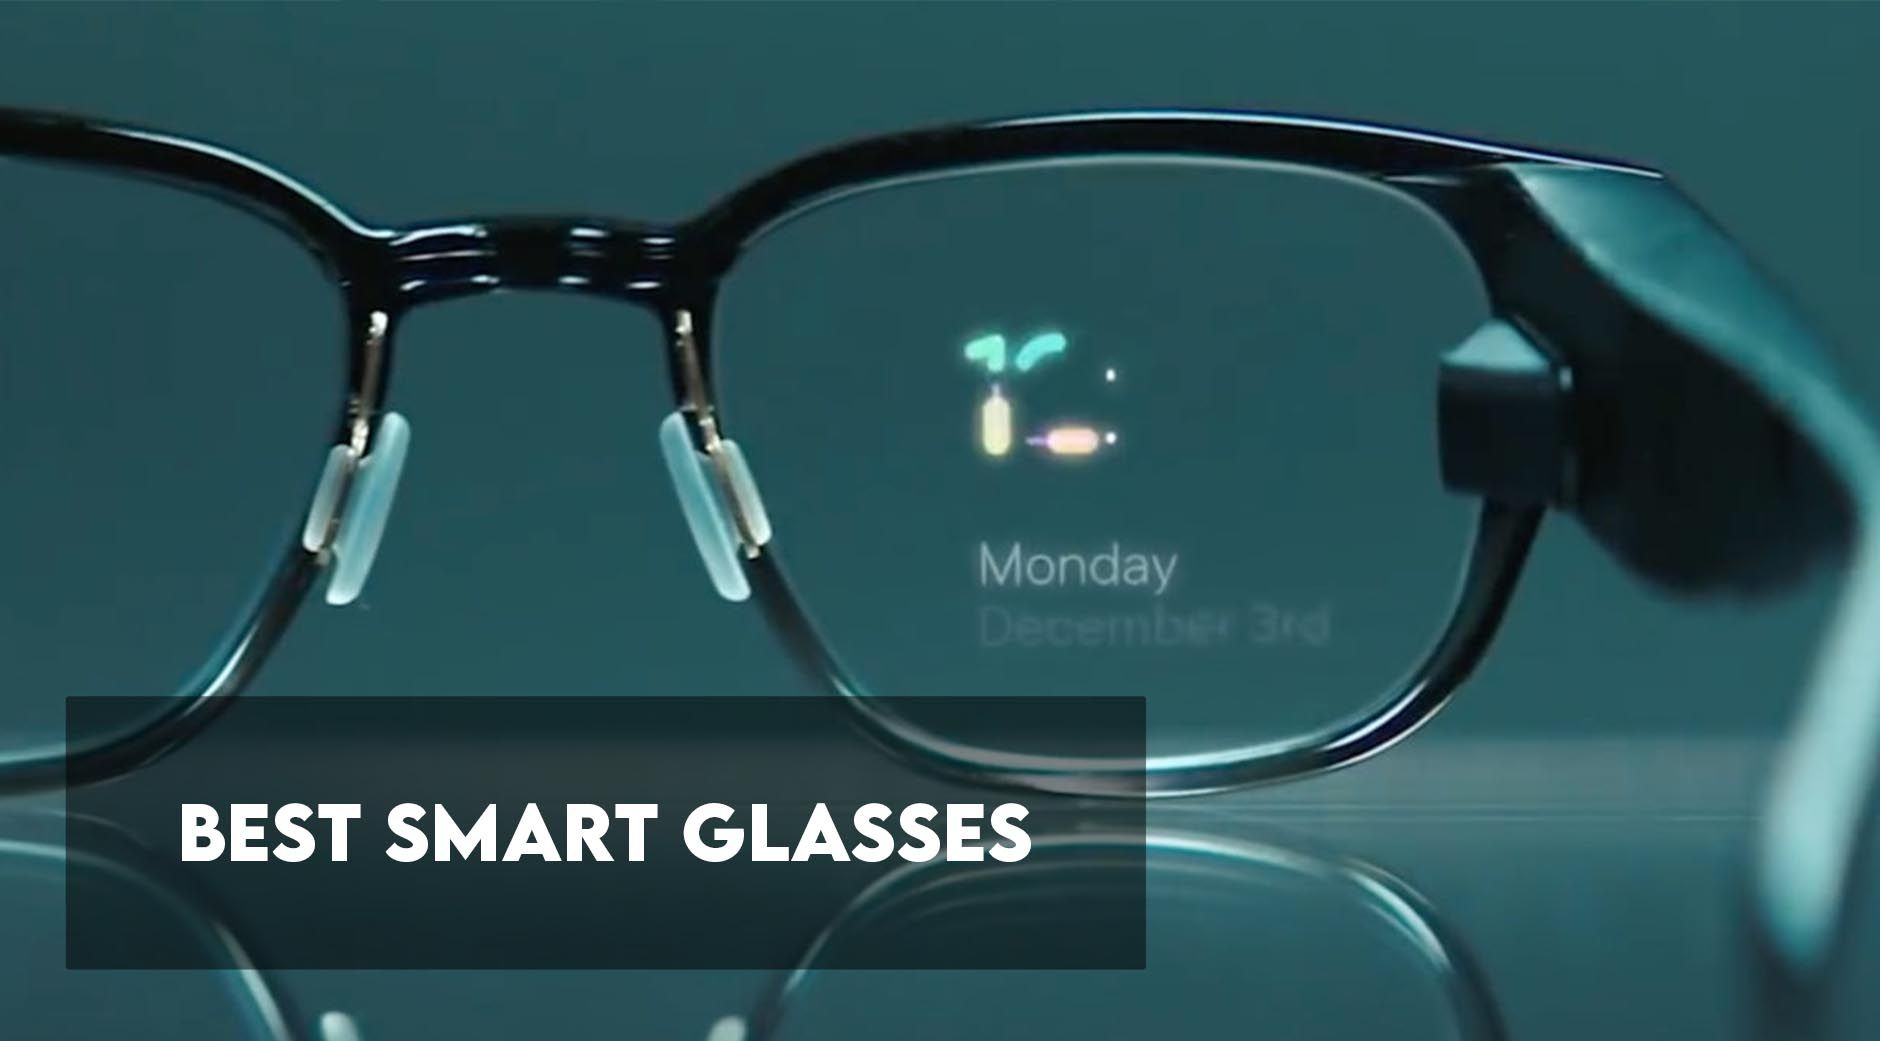 8 Best Smart Glasses to Buy in 2021 [Buying Guide]